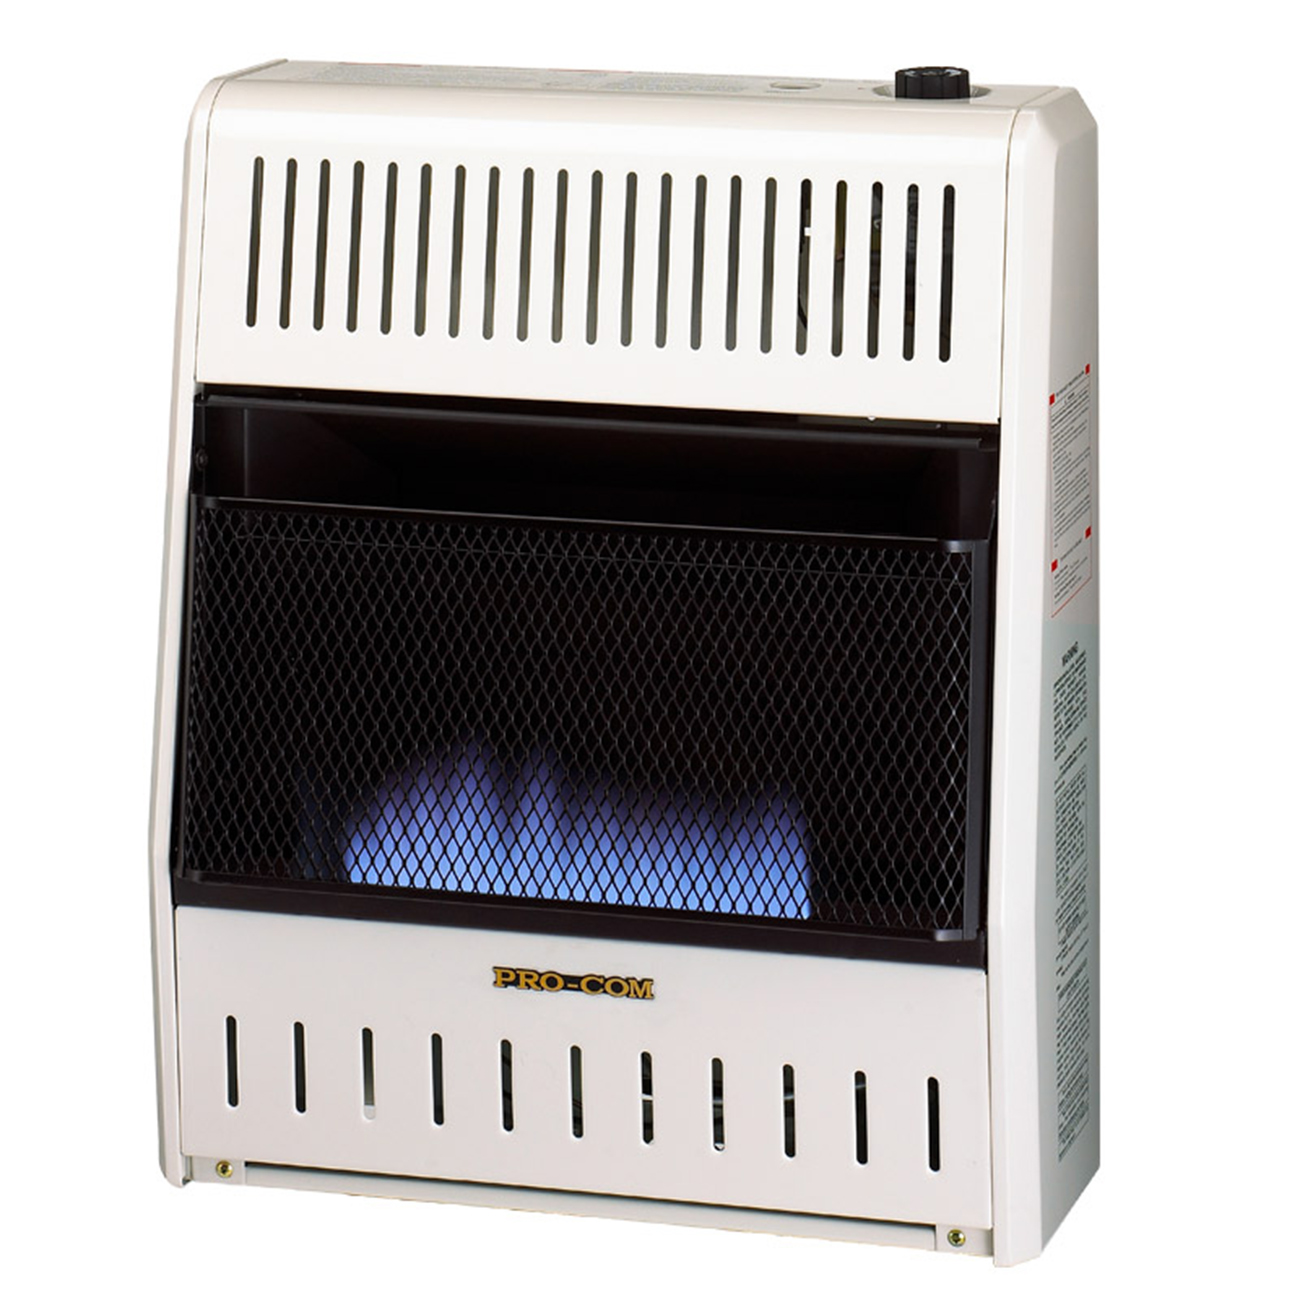 Ventless Blue Flame Heaters 86